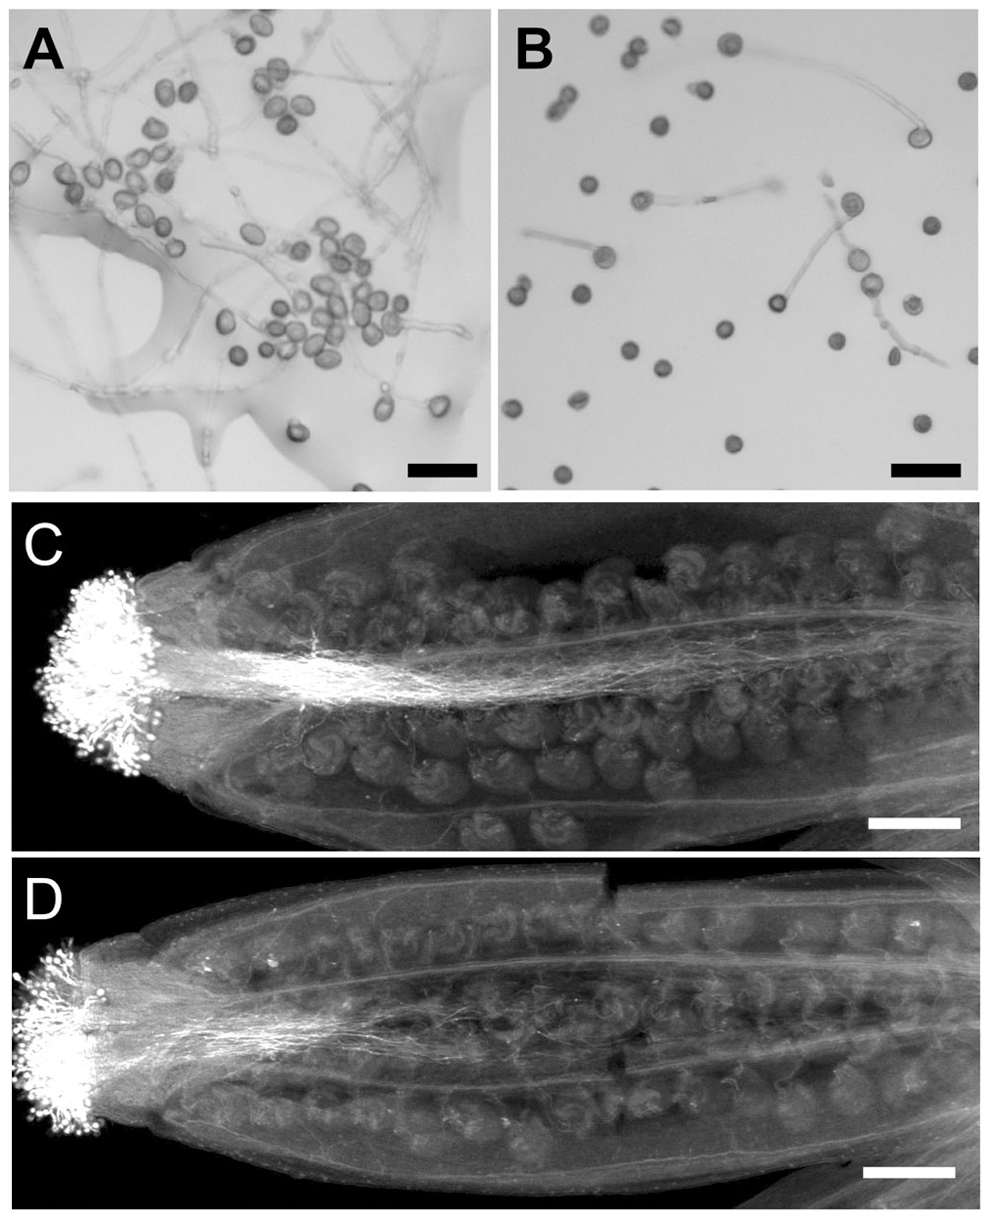 Pollen germination and pollen tube growth are defective in <i>wrky2-1 wrky34-1</i>.